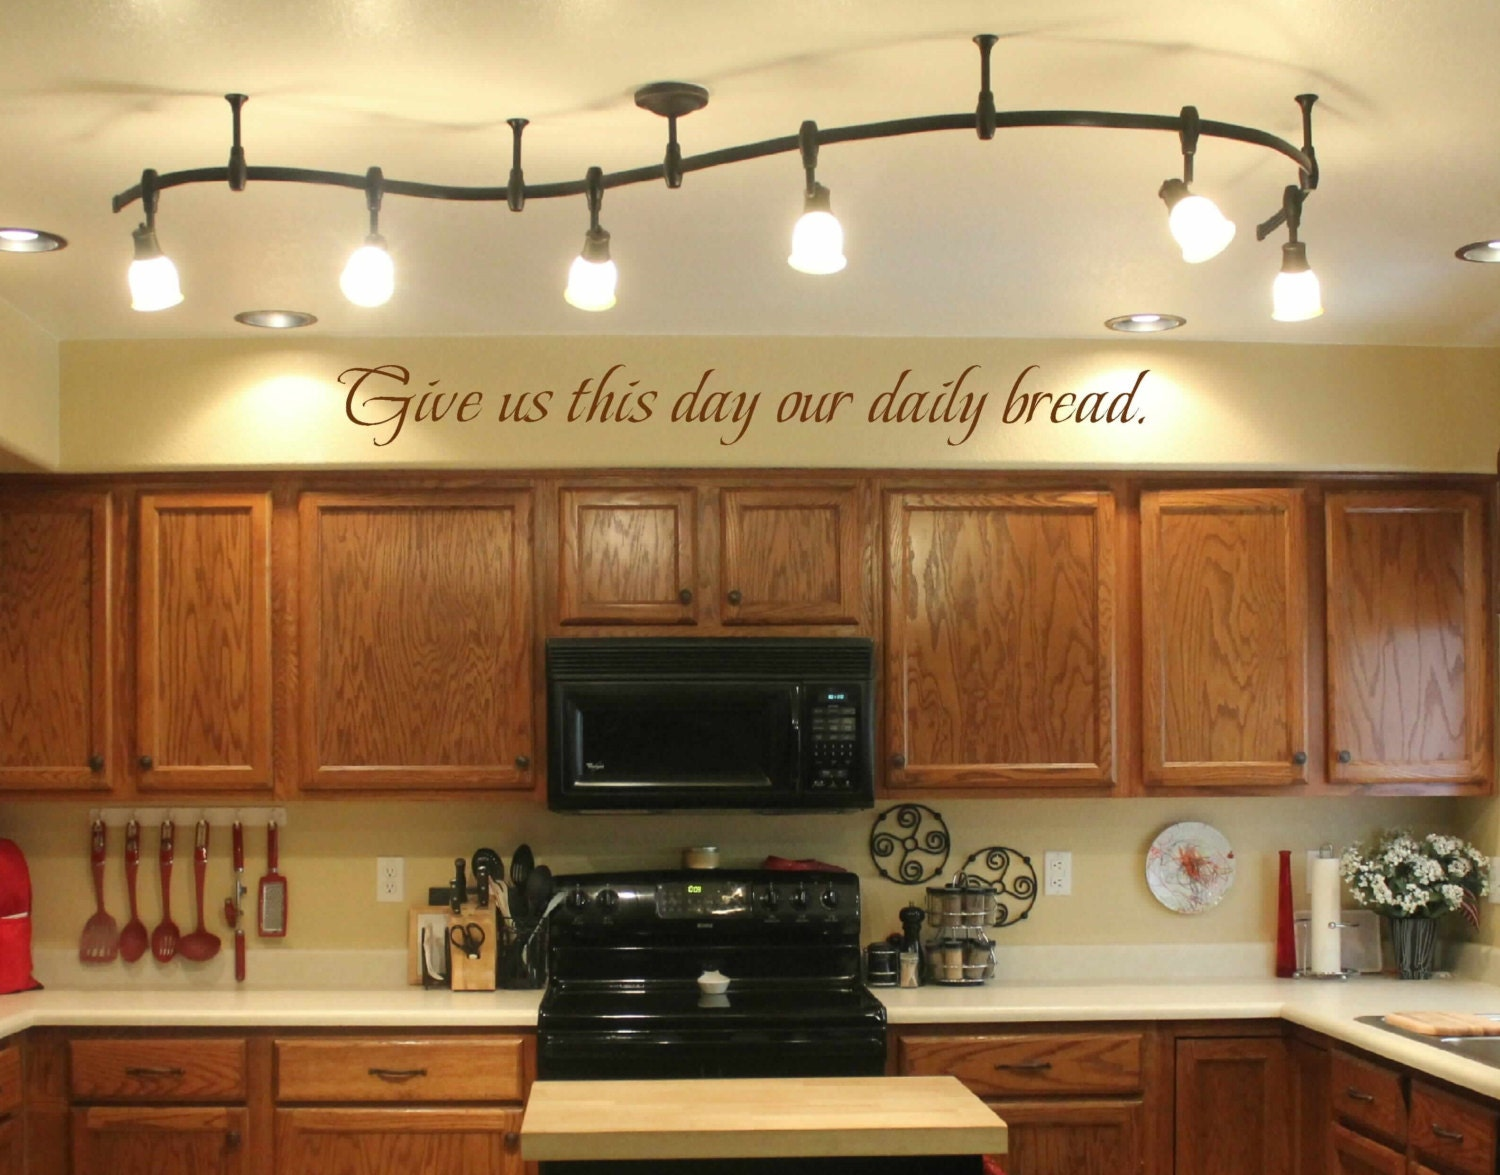 Kitchen Wall Decal Wall Vinyls Decals Art Give Us This Day